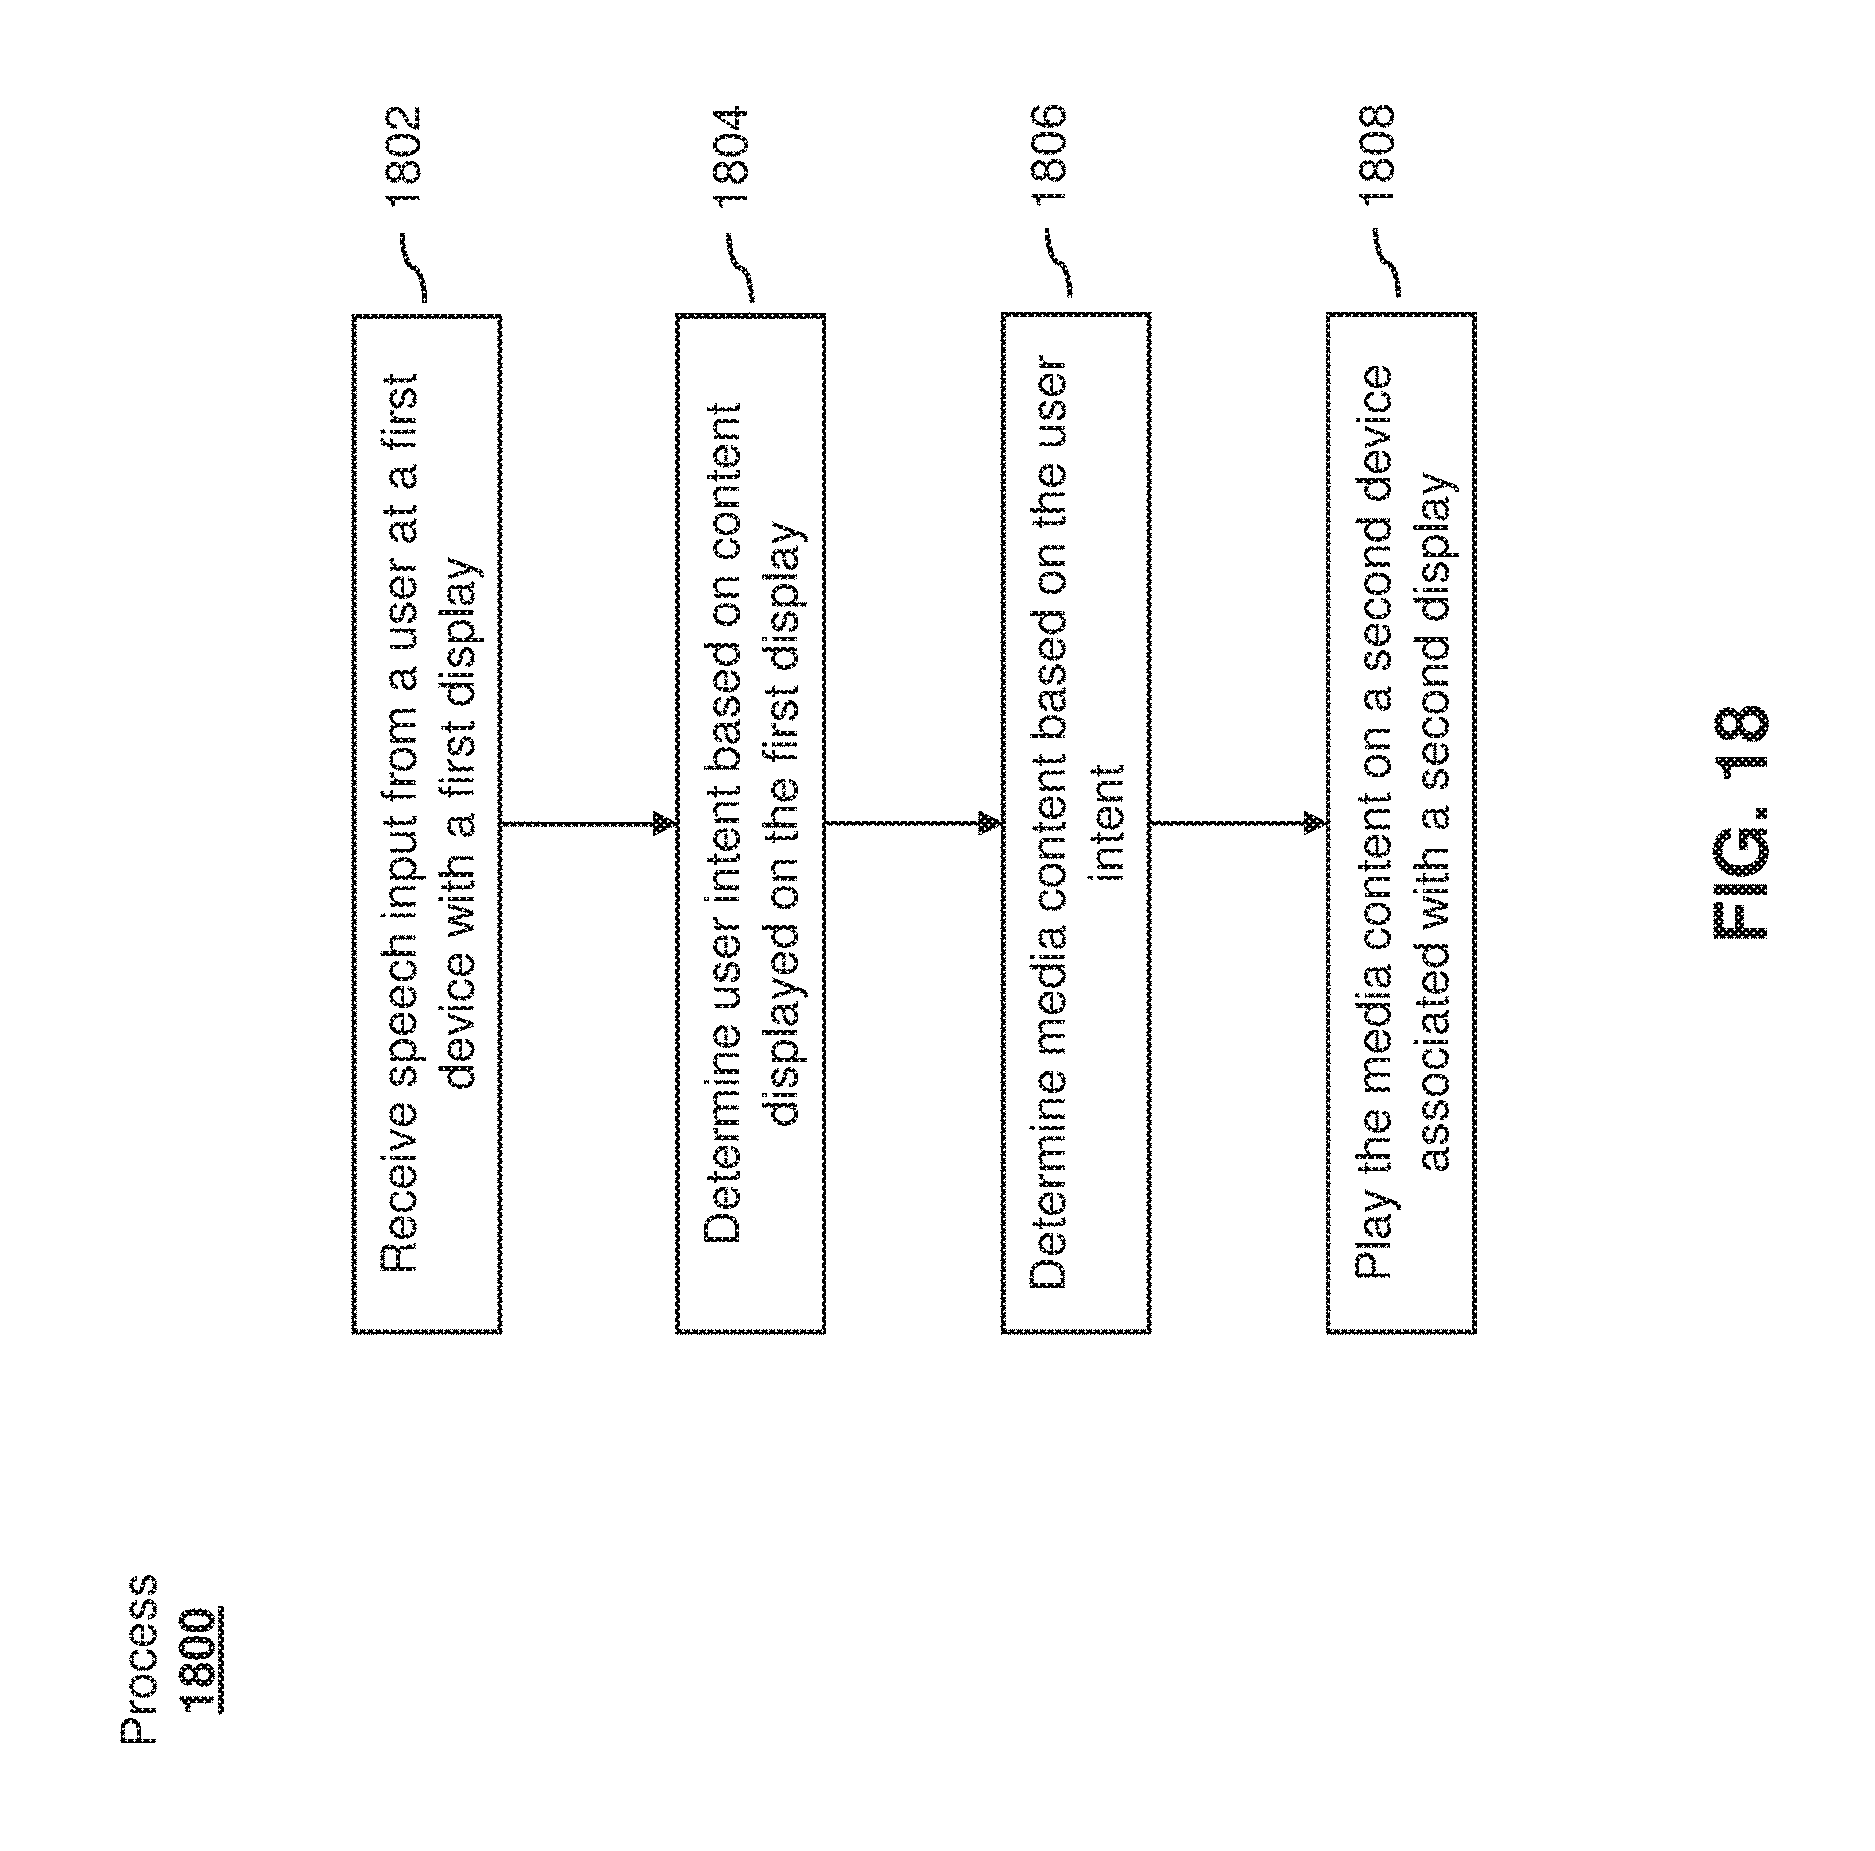 Us9668024b2 Intelligent Automated Assistant For Tv User